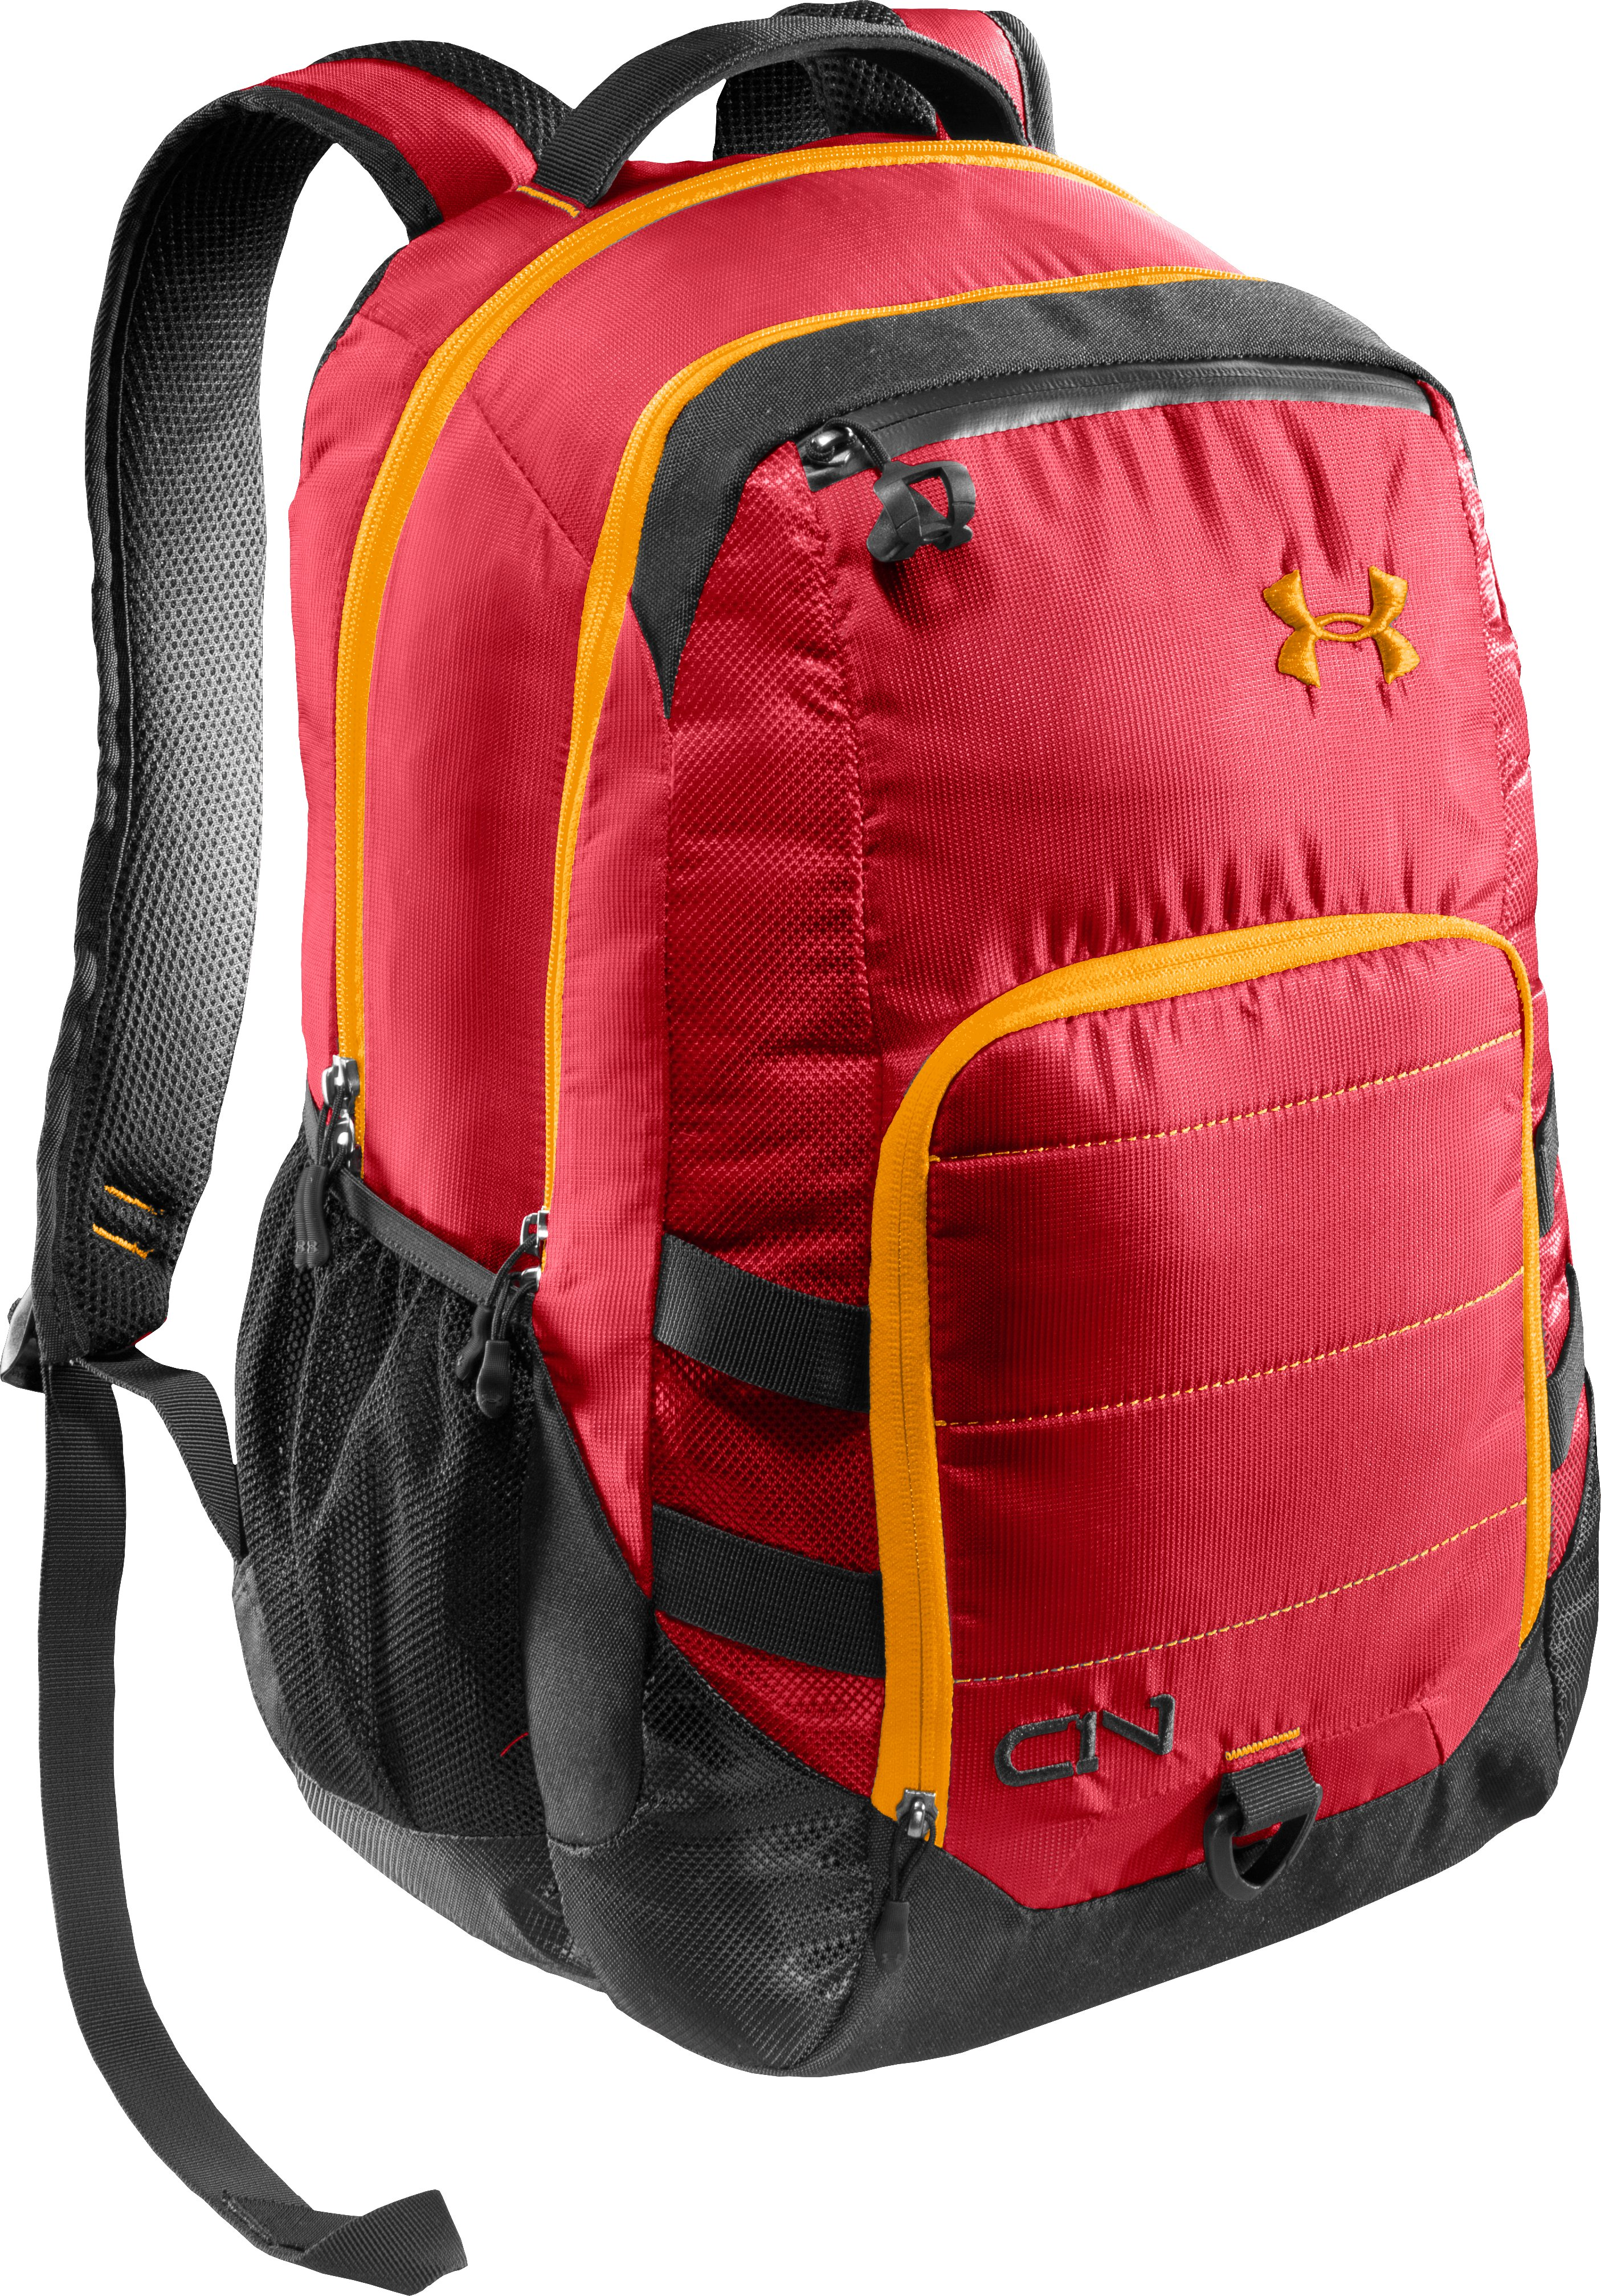 C1N Renegade Backpack, Red, zoomed image